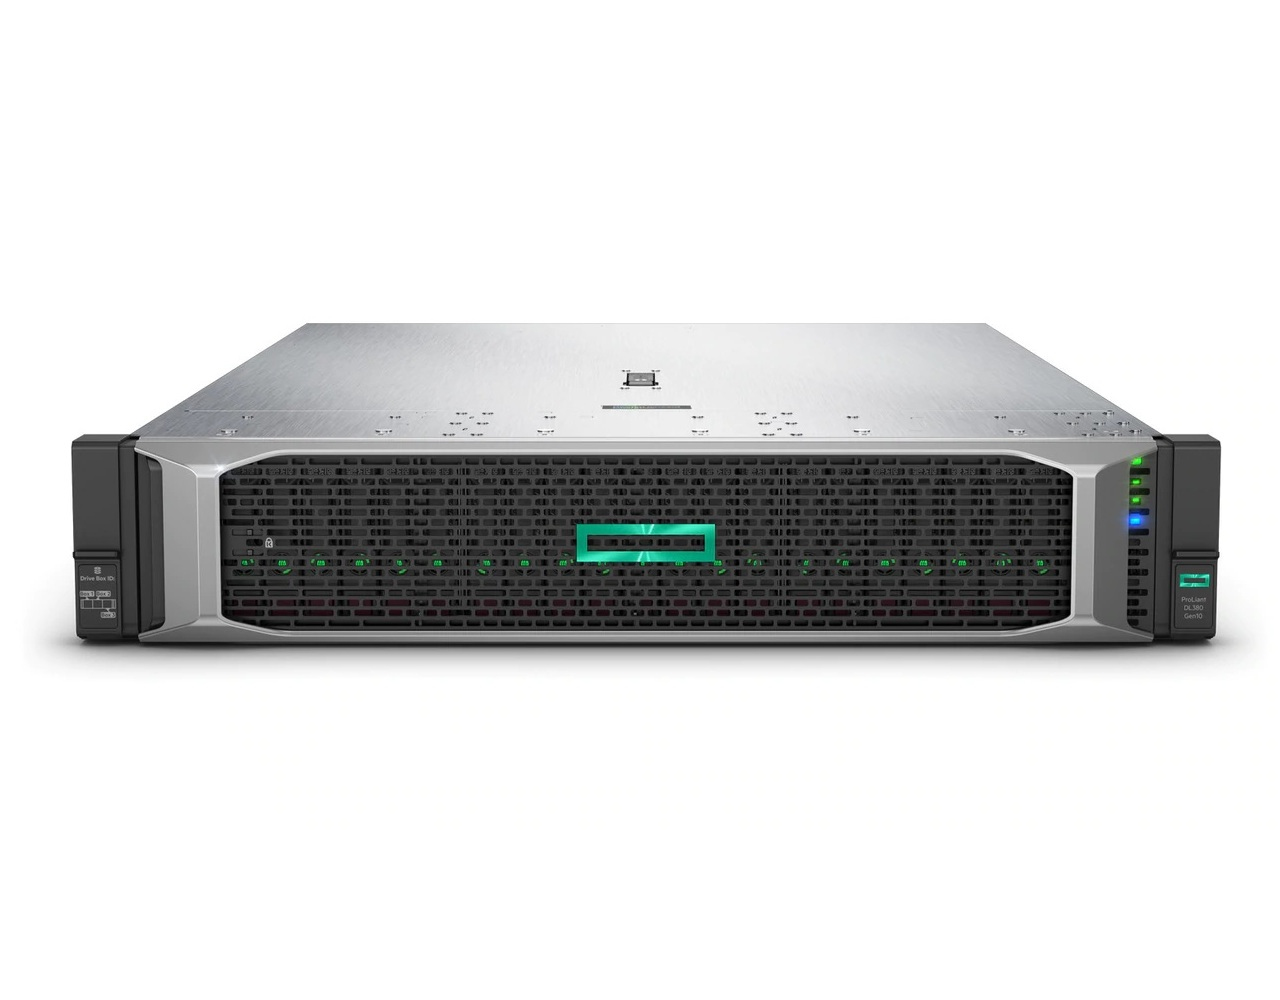 HEWLETT PACKARD ENTERPRISE ProLiant DL380 Gen10 2x 5218 (2.3GHz/16-core/125W) - P408i-a - 64GB- 8SFF - 1x 800W